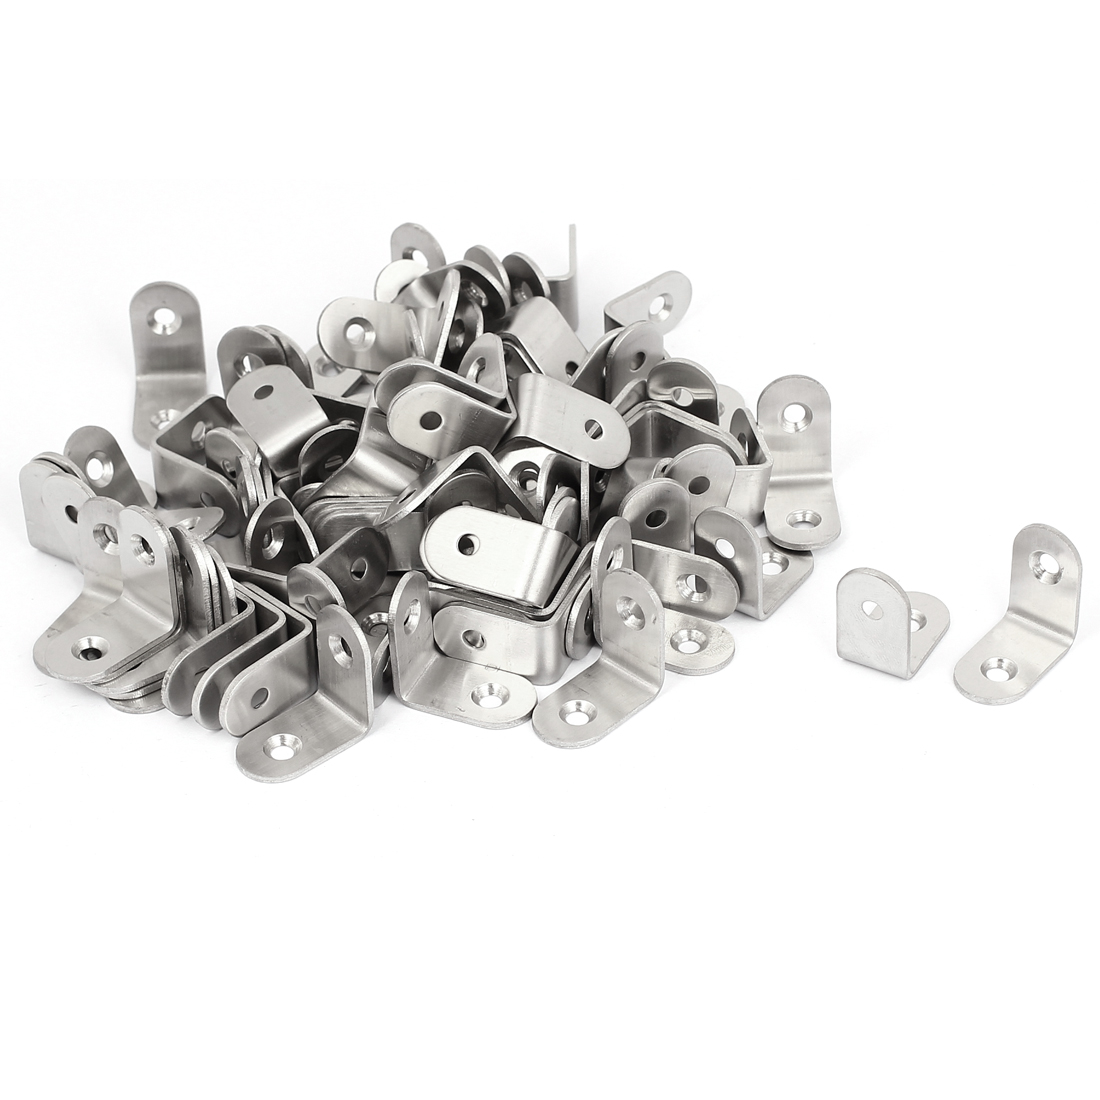 25mmx25mm Stainless Steel Corner Brace Joint Right Angle Bracket Shelf 100Pcs